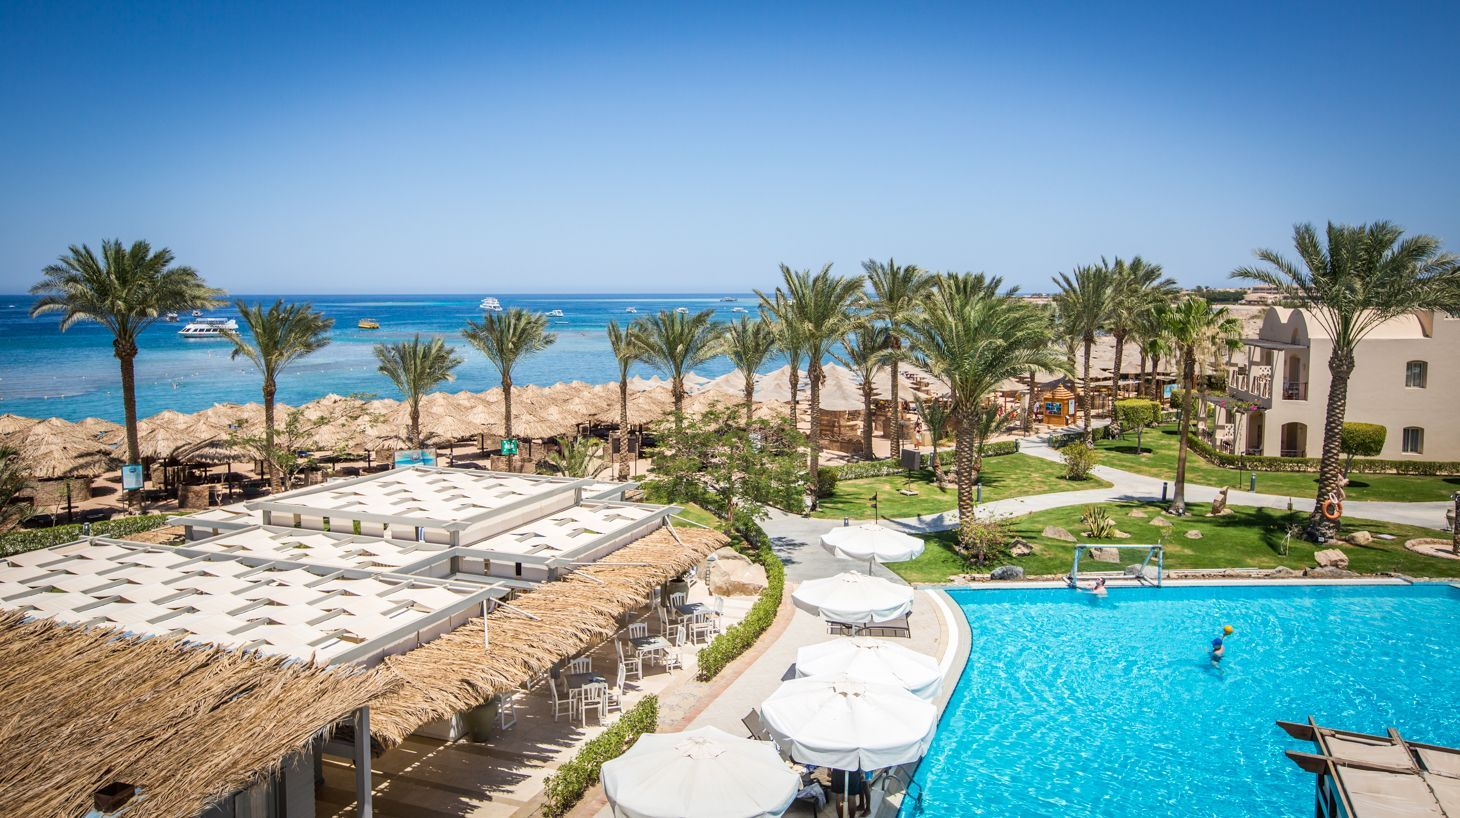 MARSA ALAM / TUI SUNEO REEF MARSA Accommodation